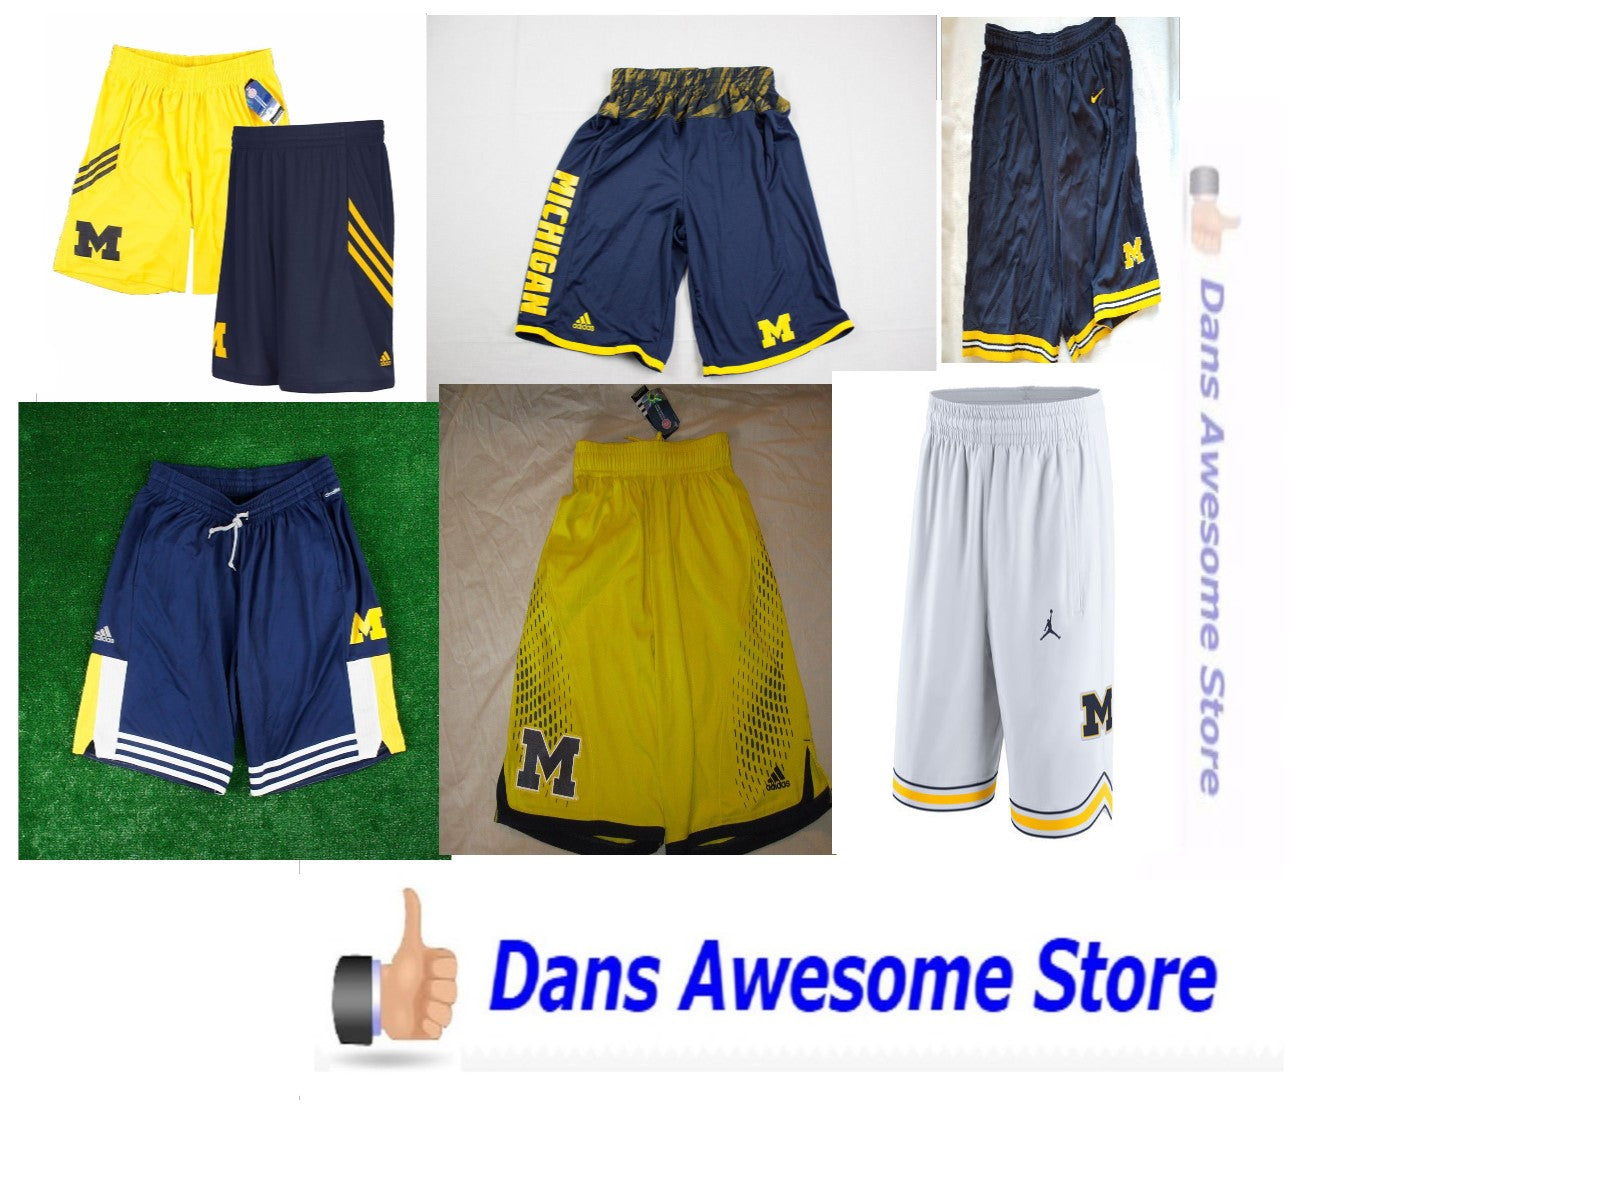 Michigan Wolverines Shorts - Dans Awesome Store